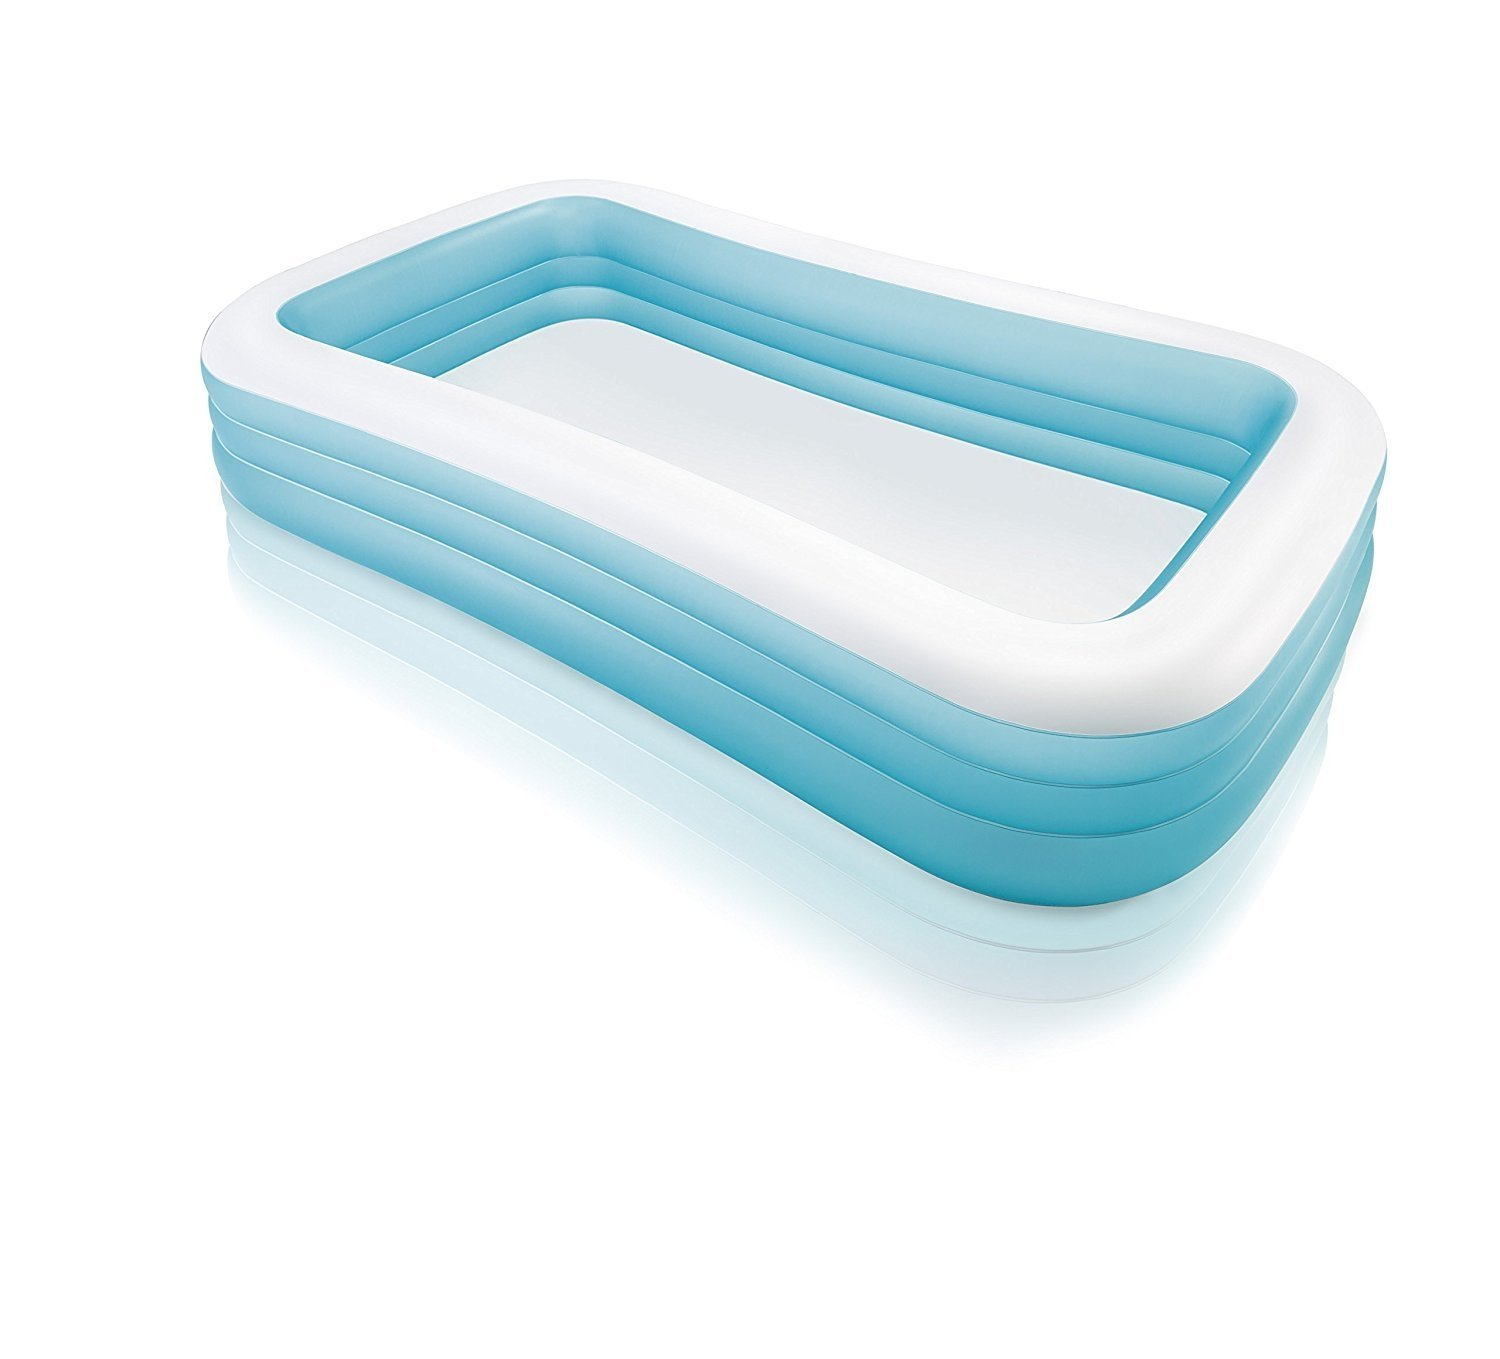 Piscina Intex Familiar Piscina Hinchable Familiar Intex 58484 1001juguetes